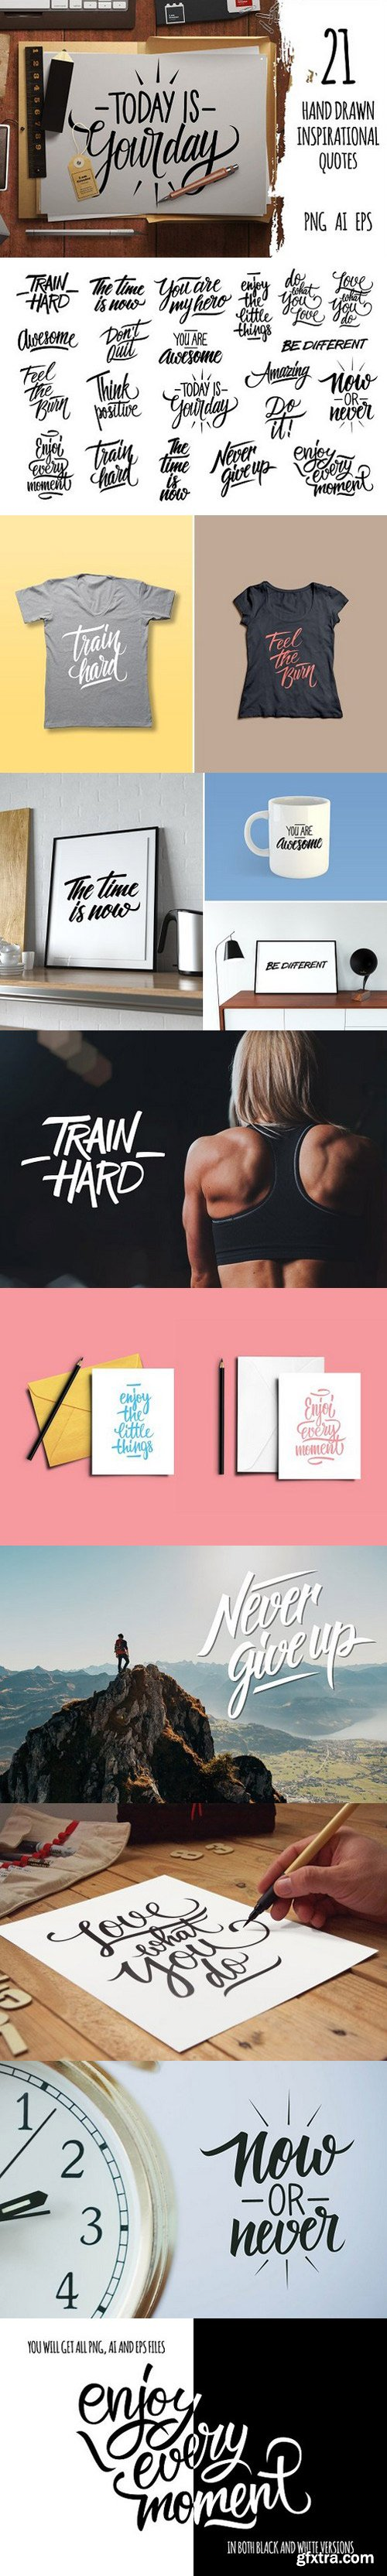 Hand drawn inspirational quotes